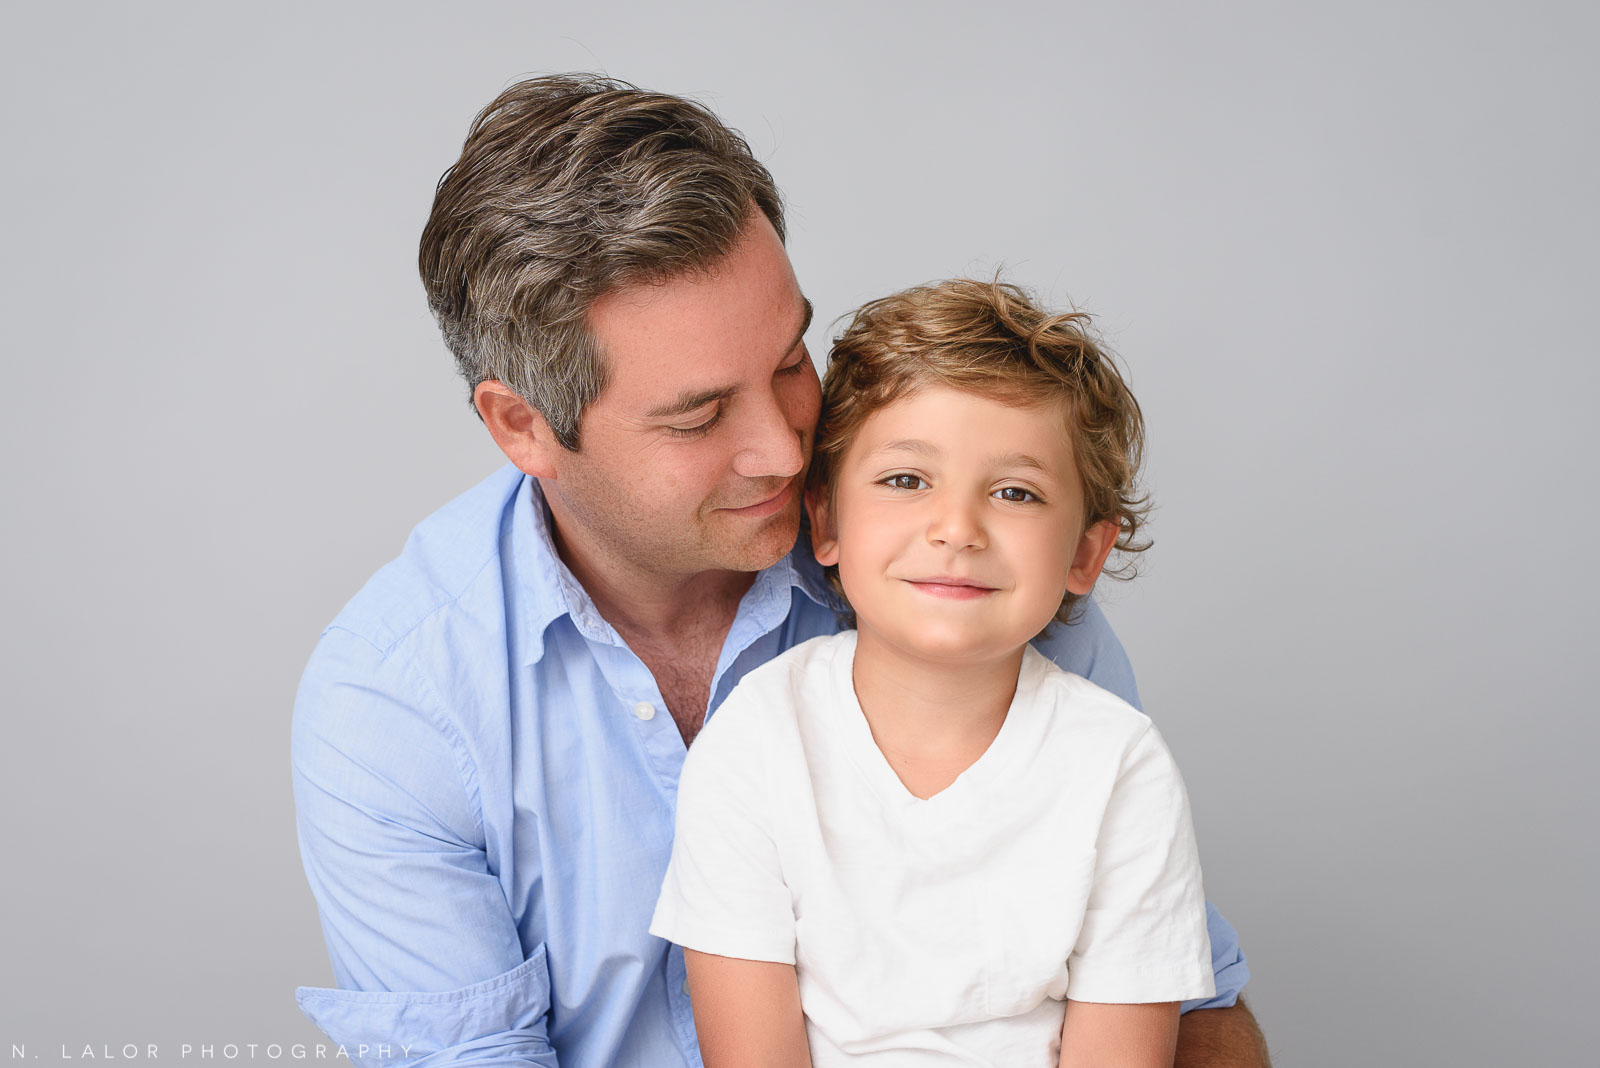 Dad with son. Family photo session by N. Lalor Photography in Greenwich, CT.